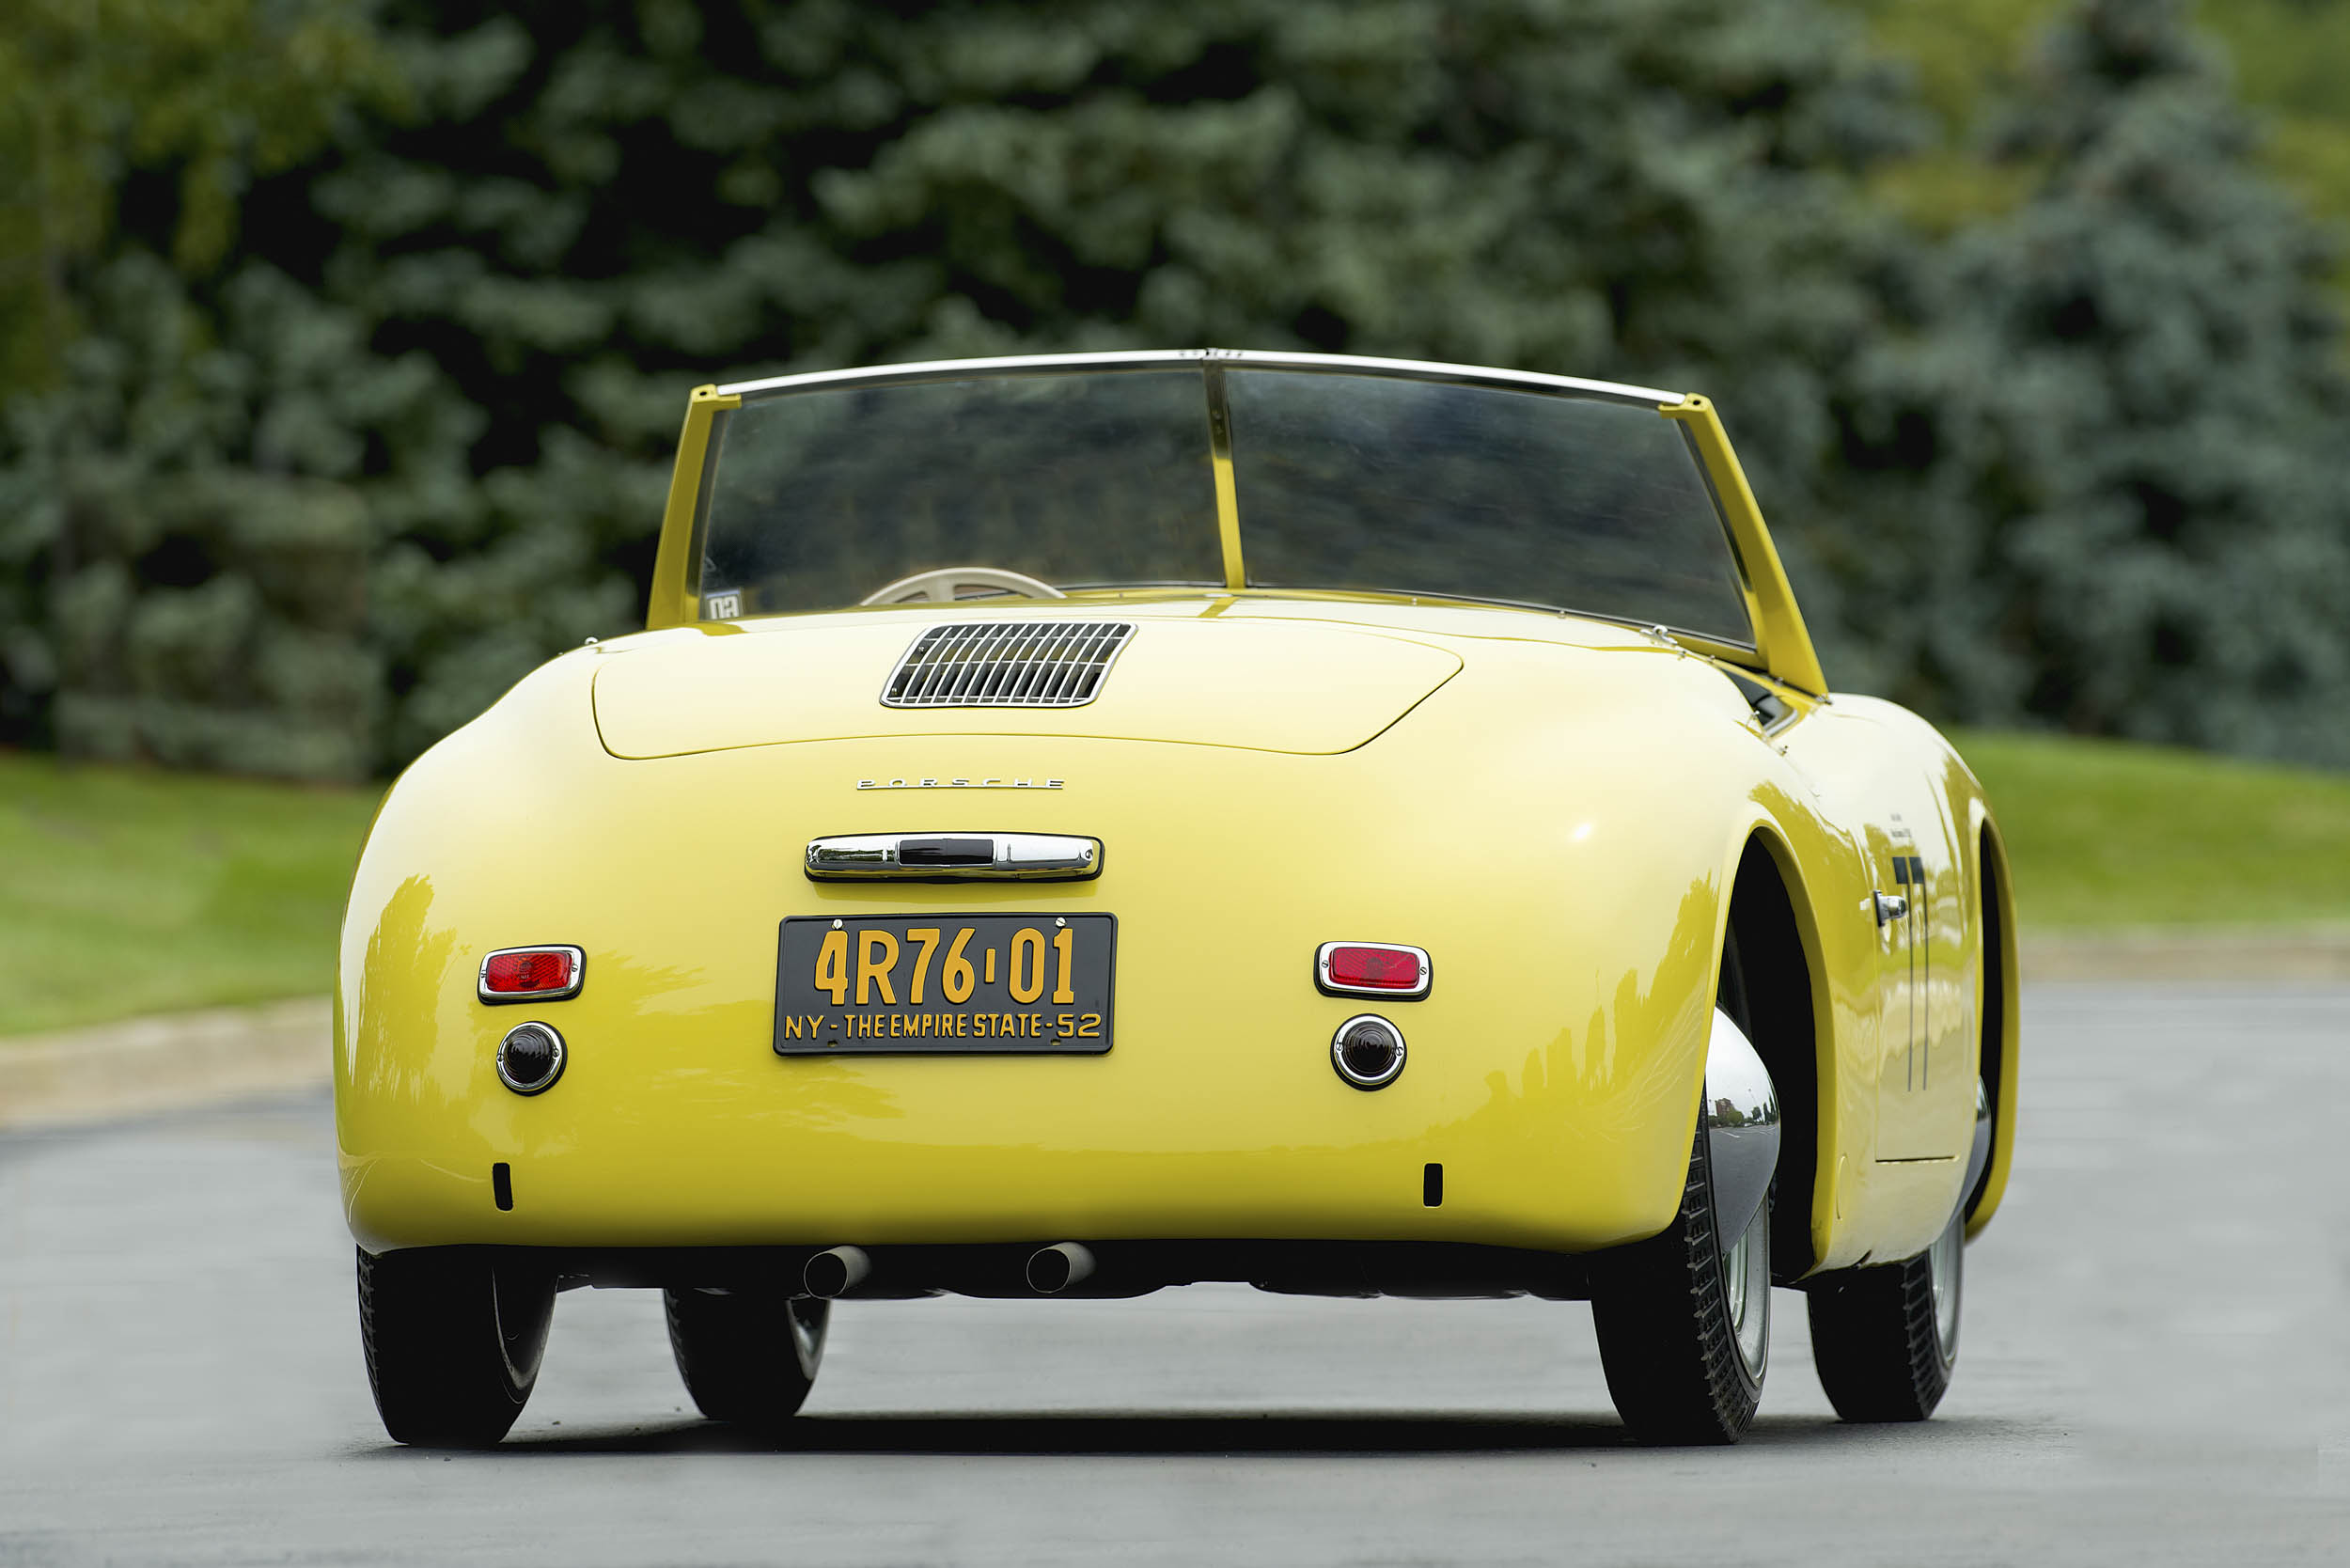 When the car left Hoffman it probably sported a 1952 New York license plate, as it does today.